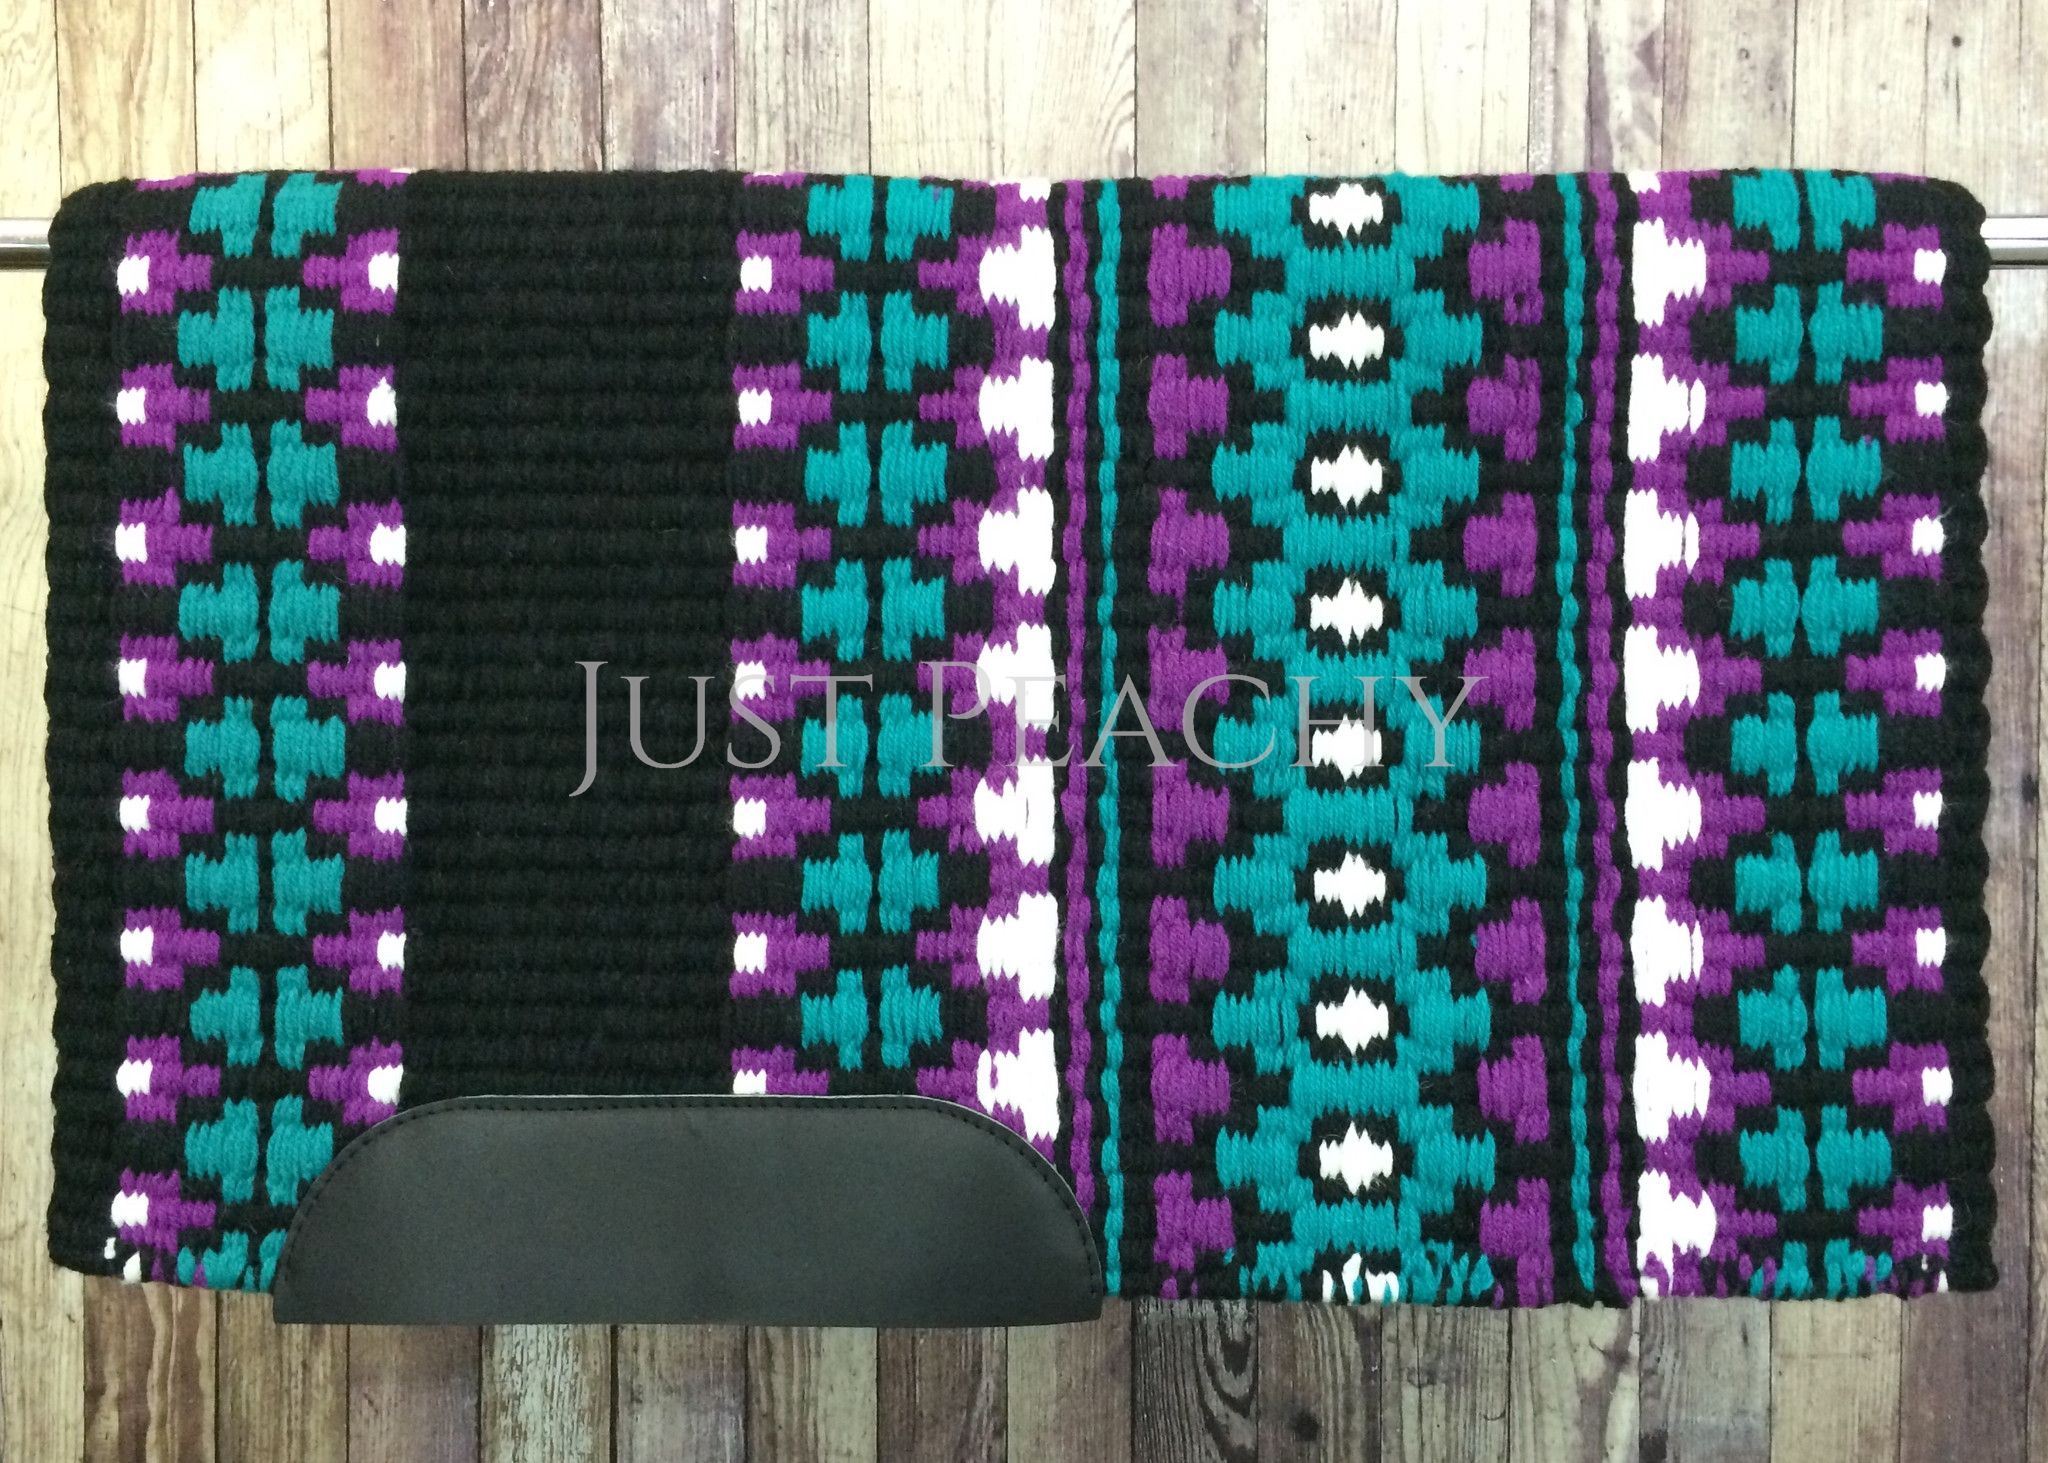 34 x 42 Oversized Western Show Pad/Saddle Blanket ~ Just Peachy #254